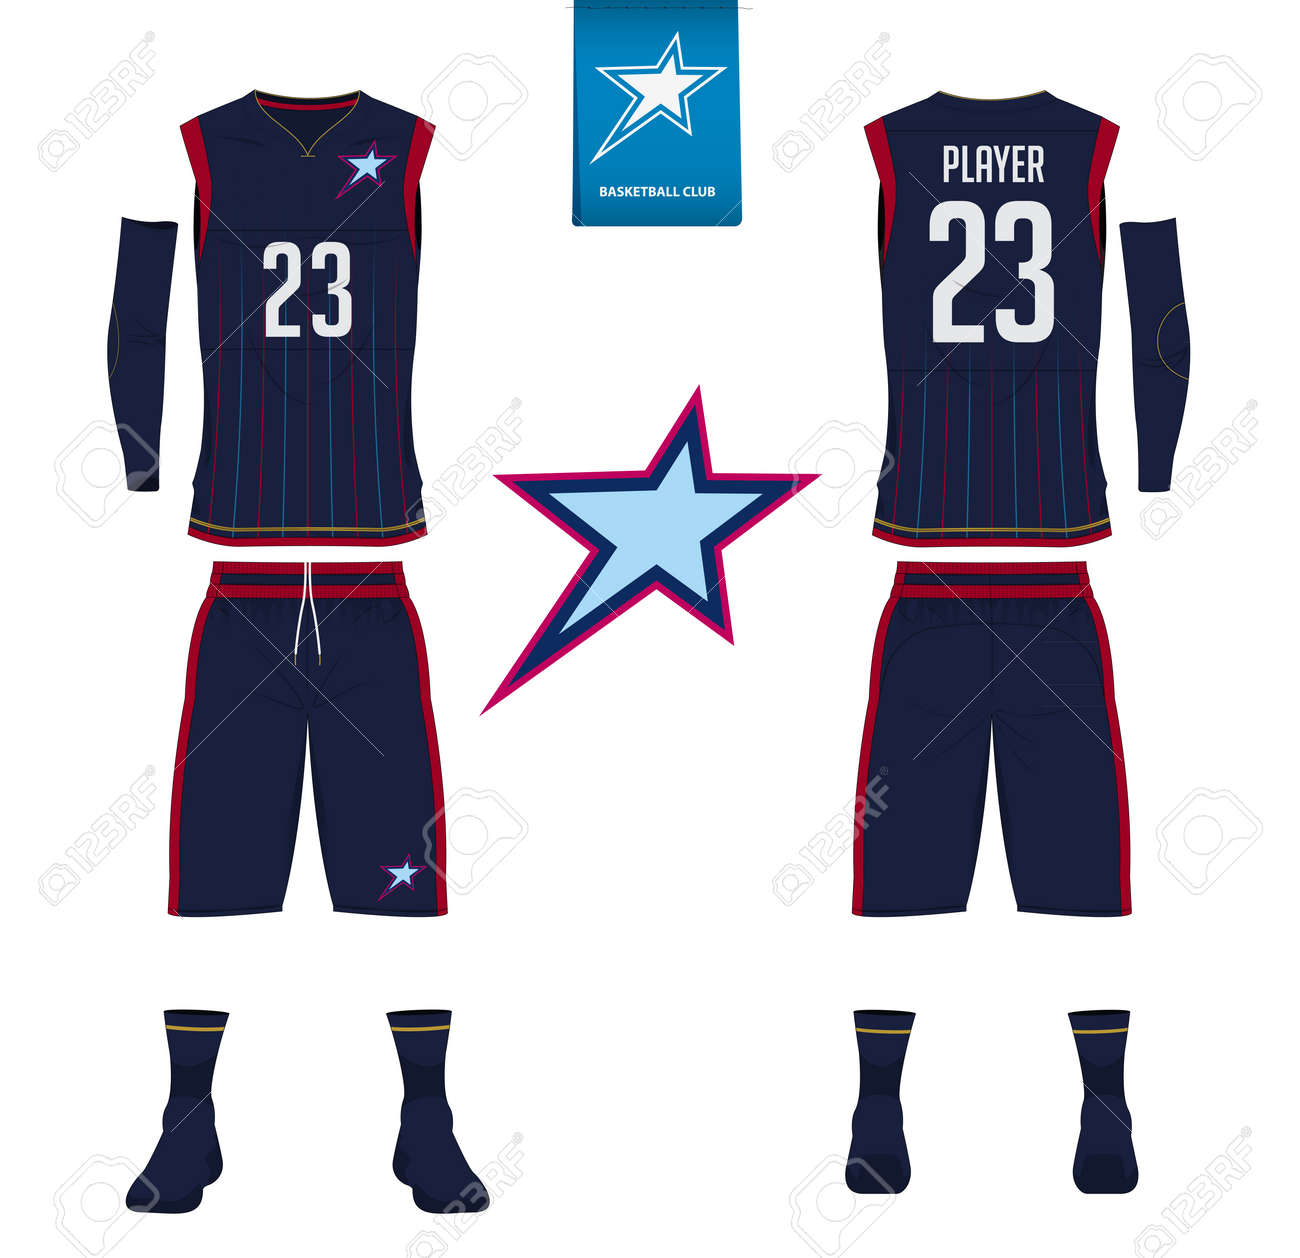 info for a2c32 680b1 Basketball jersey, shorts, socks template for basketball club...